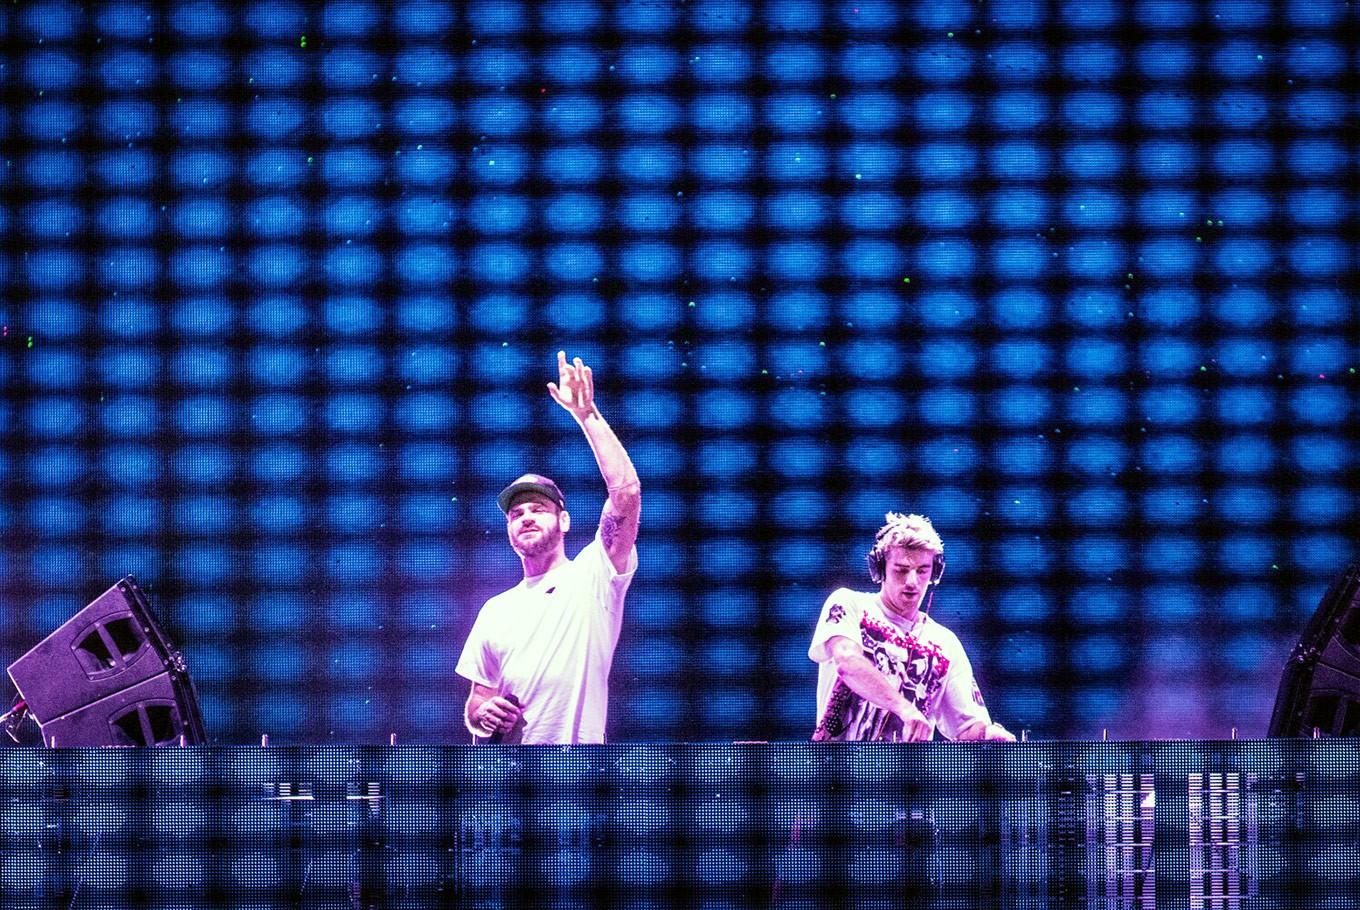 The Chainsmokers' Singapore concert cancelled